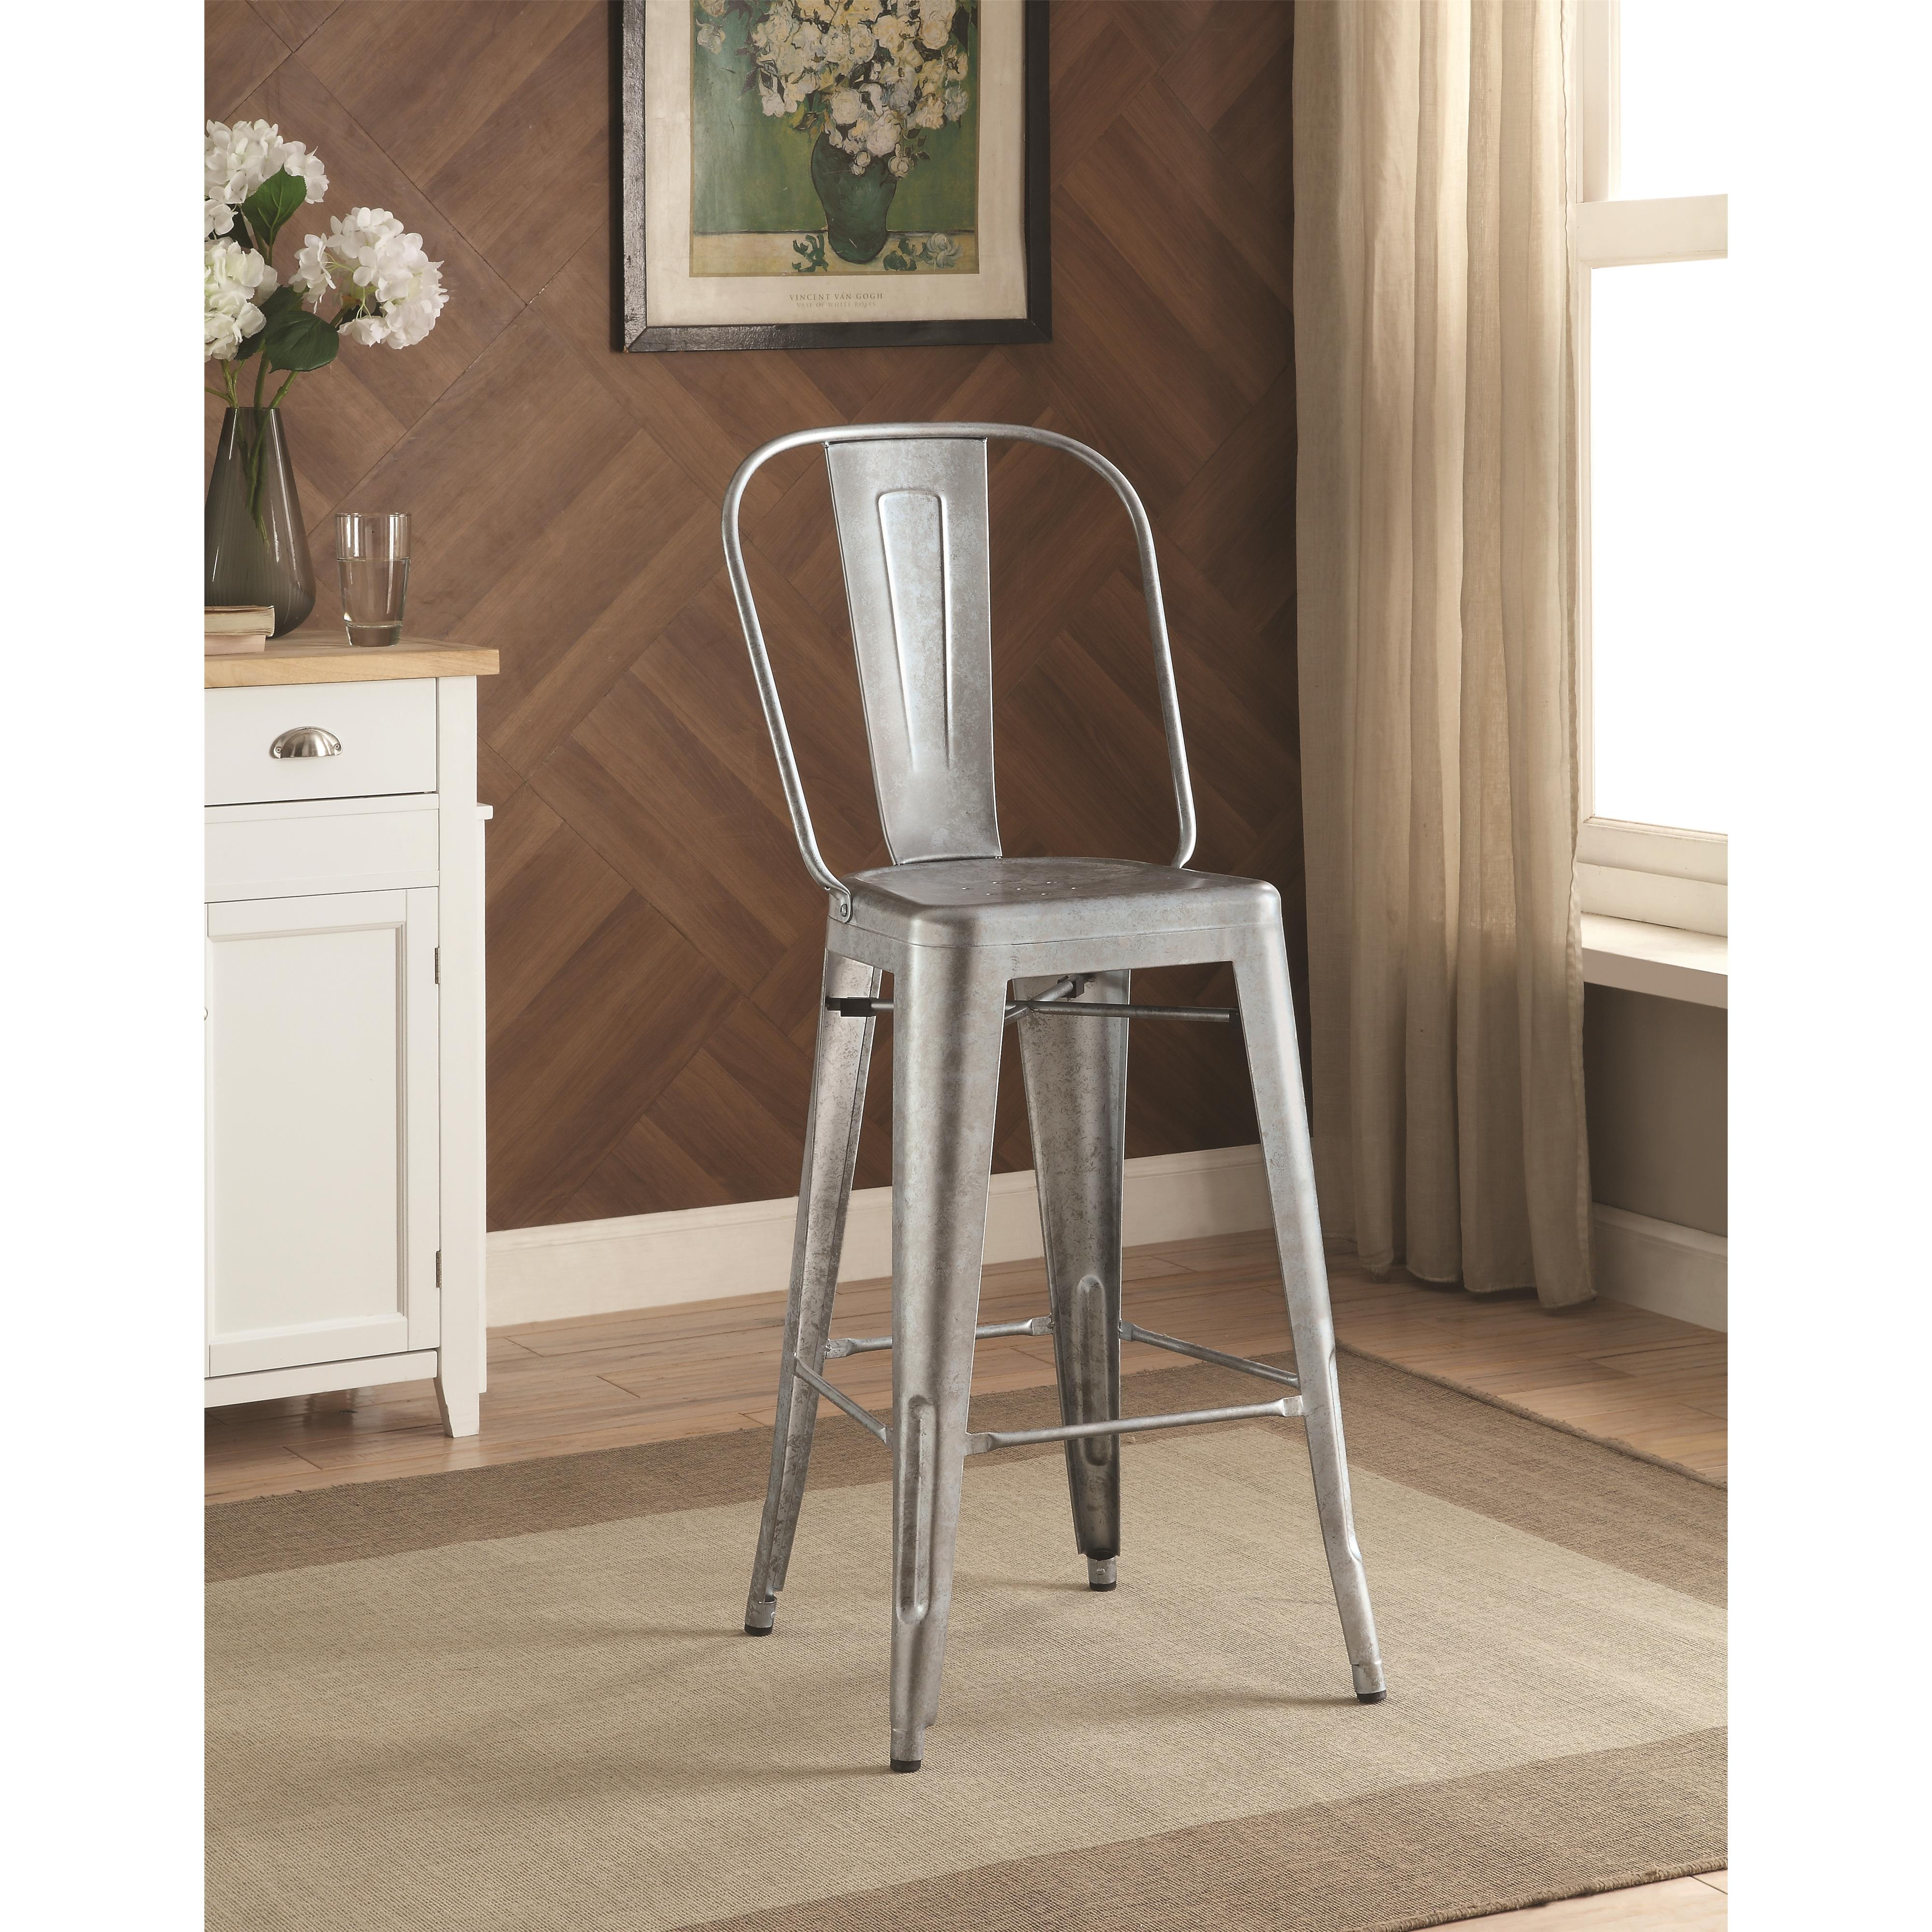 Coaster Dining Chairs and Bar Stools Bar Stool - Item Number: 106017